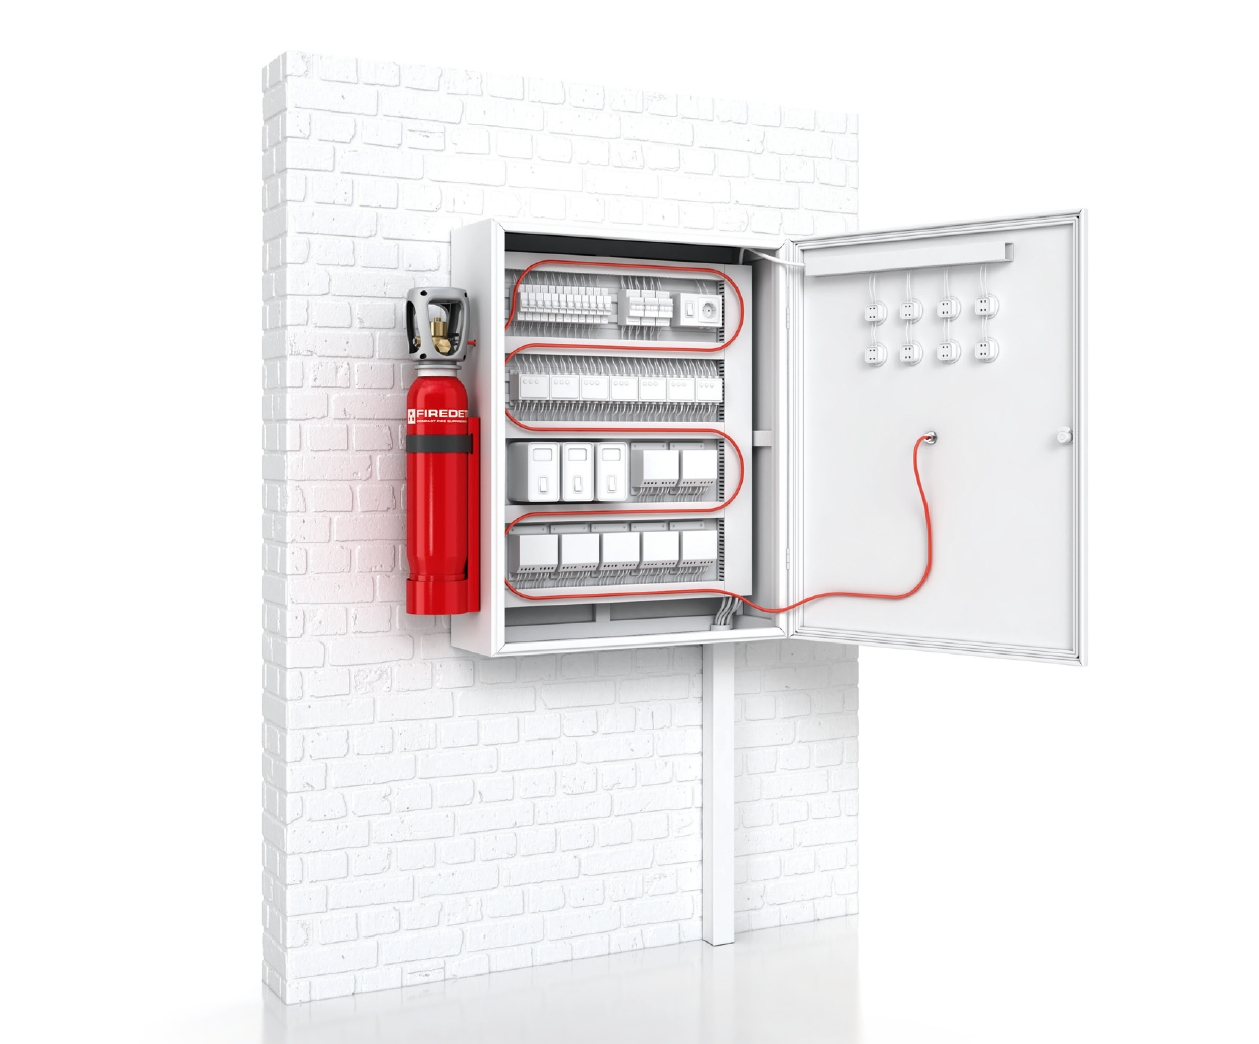 Pre Engineered Electrical Cabinet Fire Suppression System   Direct CO2  Extinguishing Agent